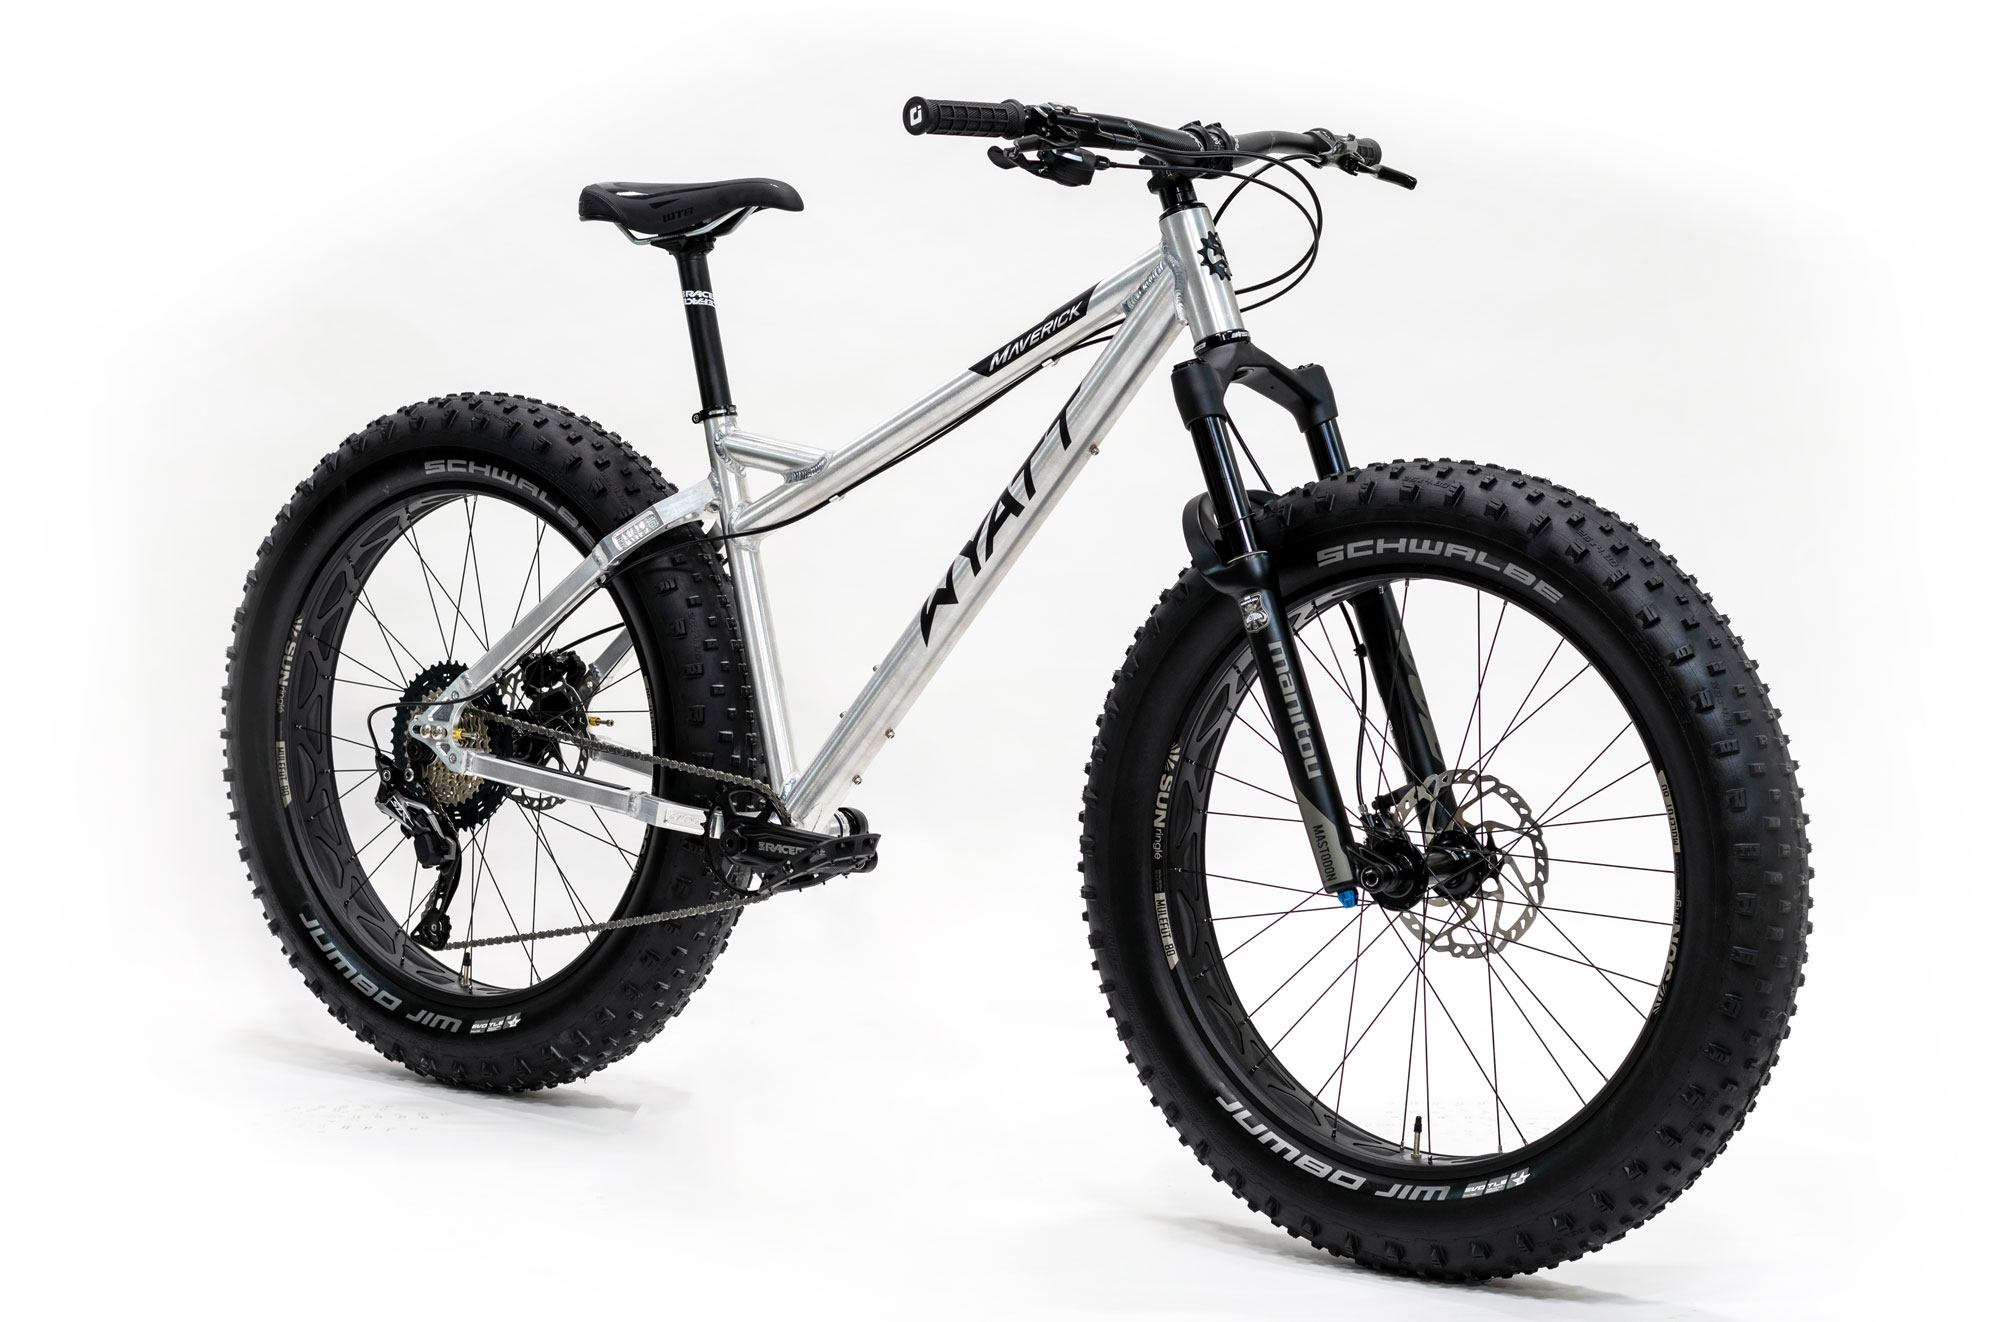 American-made fat bike